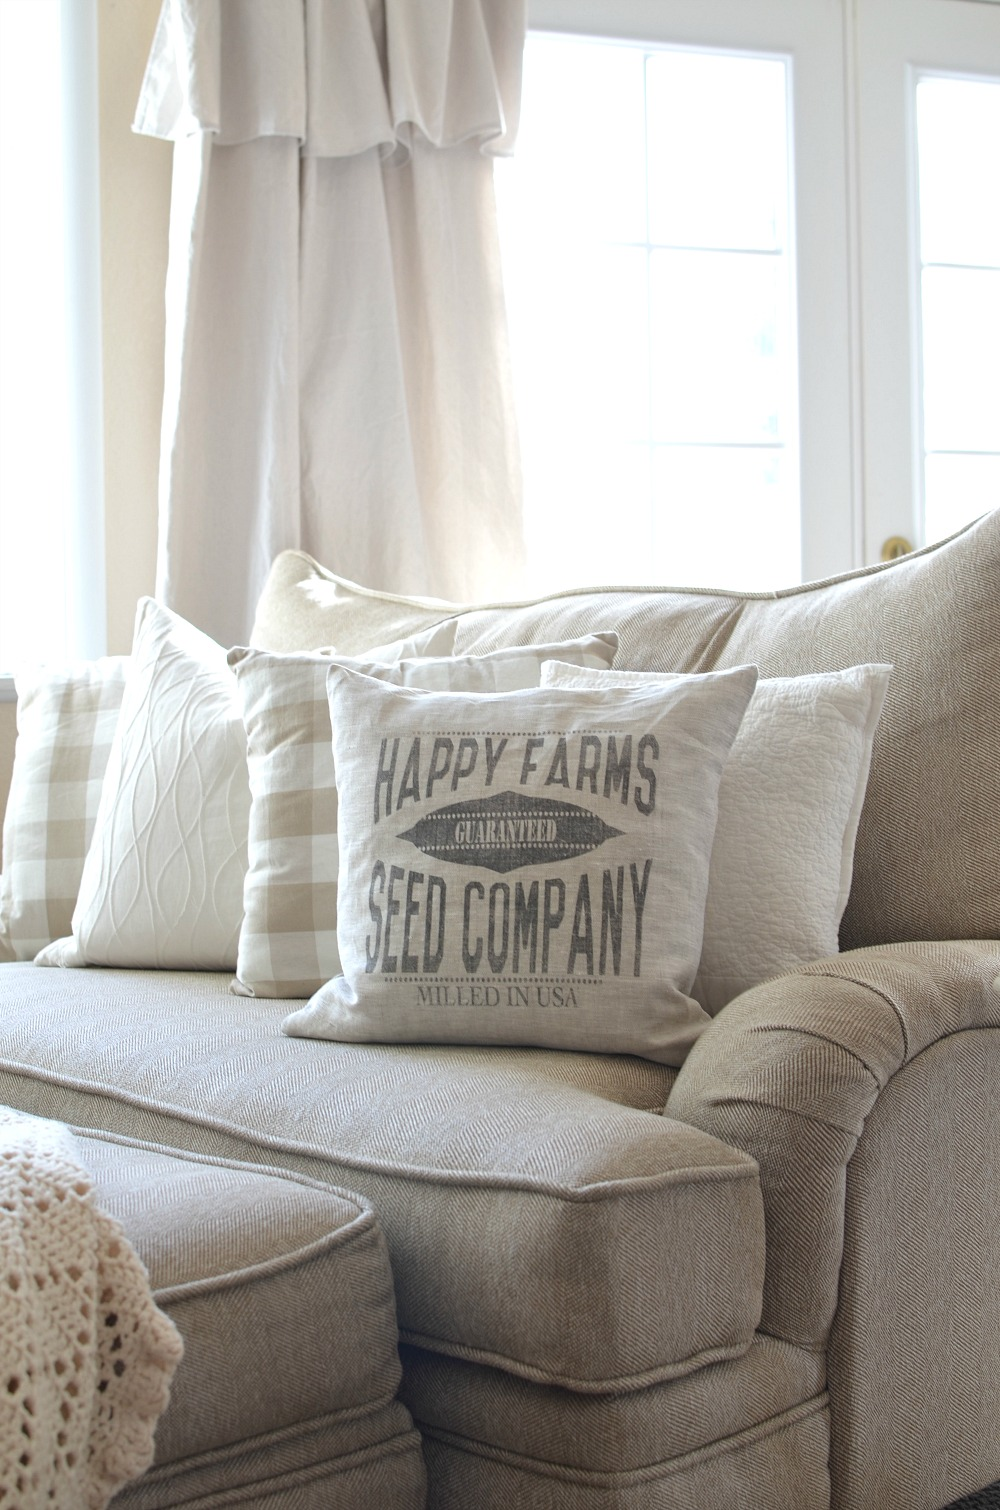 Farmhouse Decor and Pillow--Happy Farm Seed Company Pillow